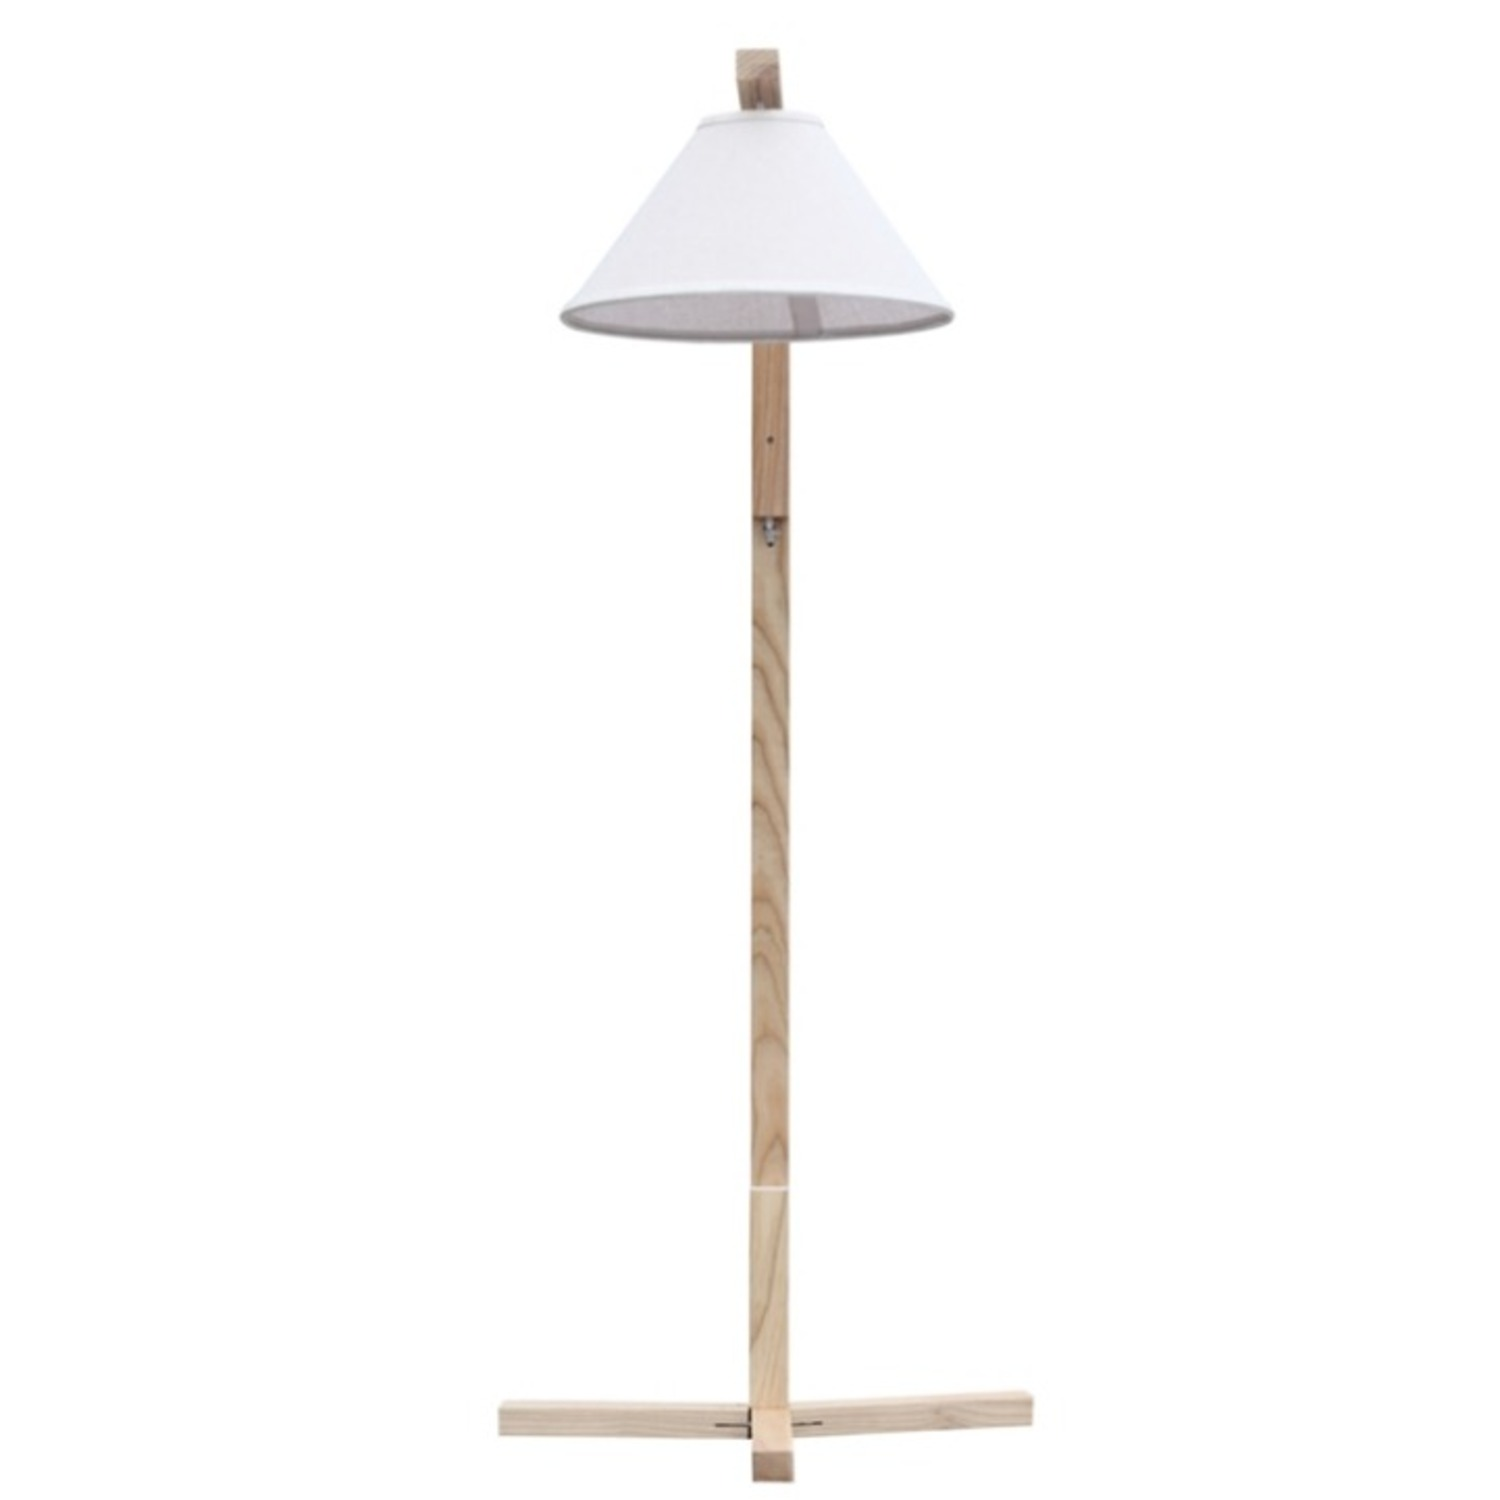 Spiral Floor Lamp In Natural Wood Finish - image-3